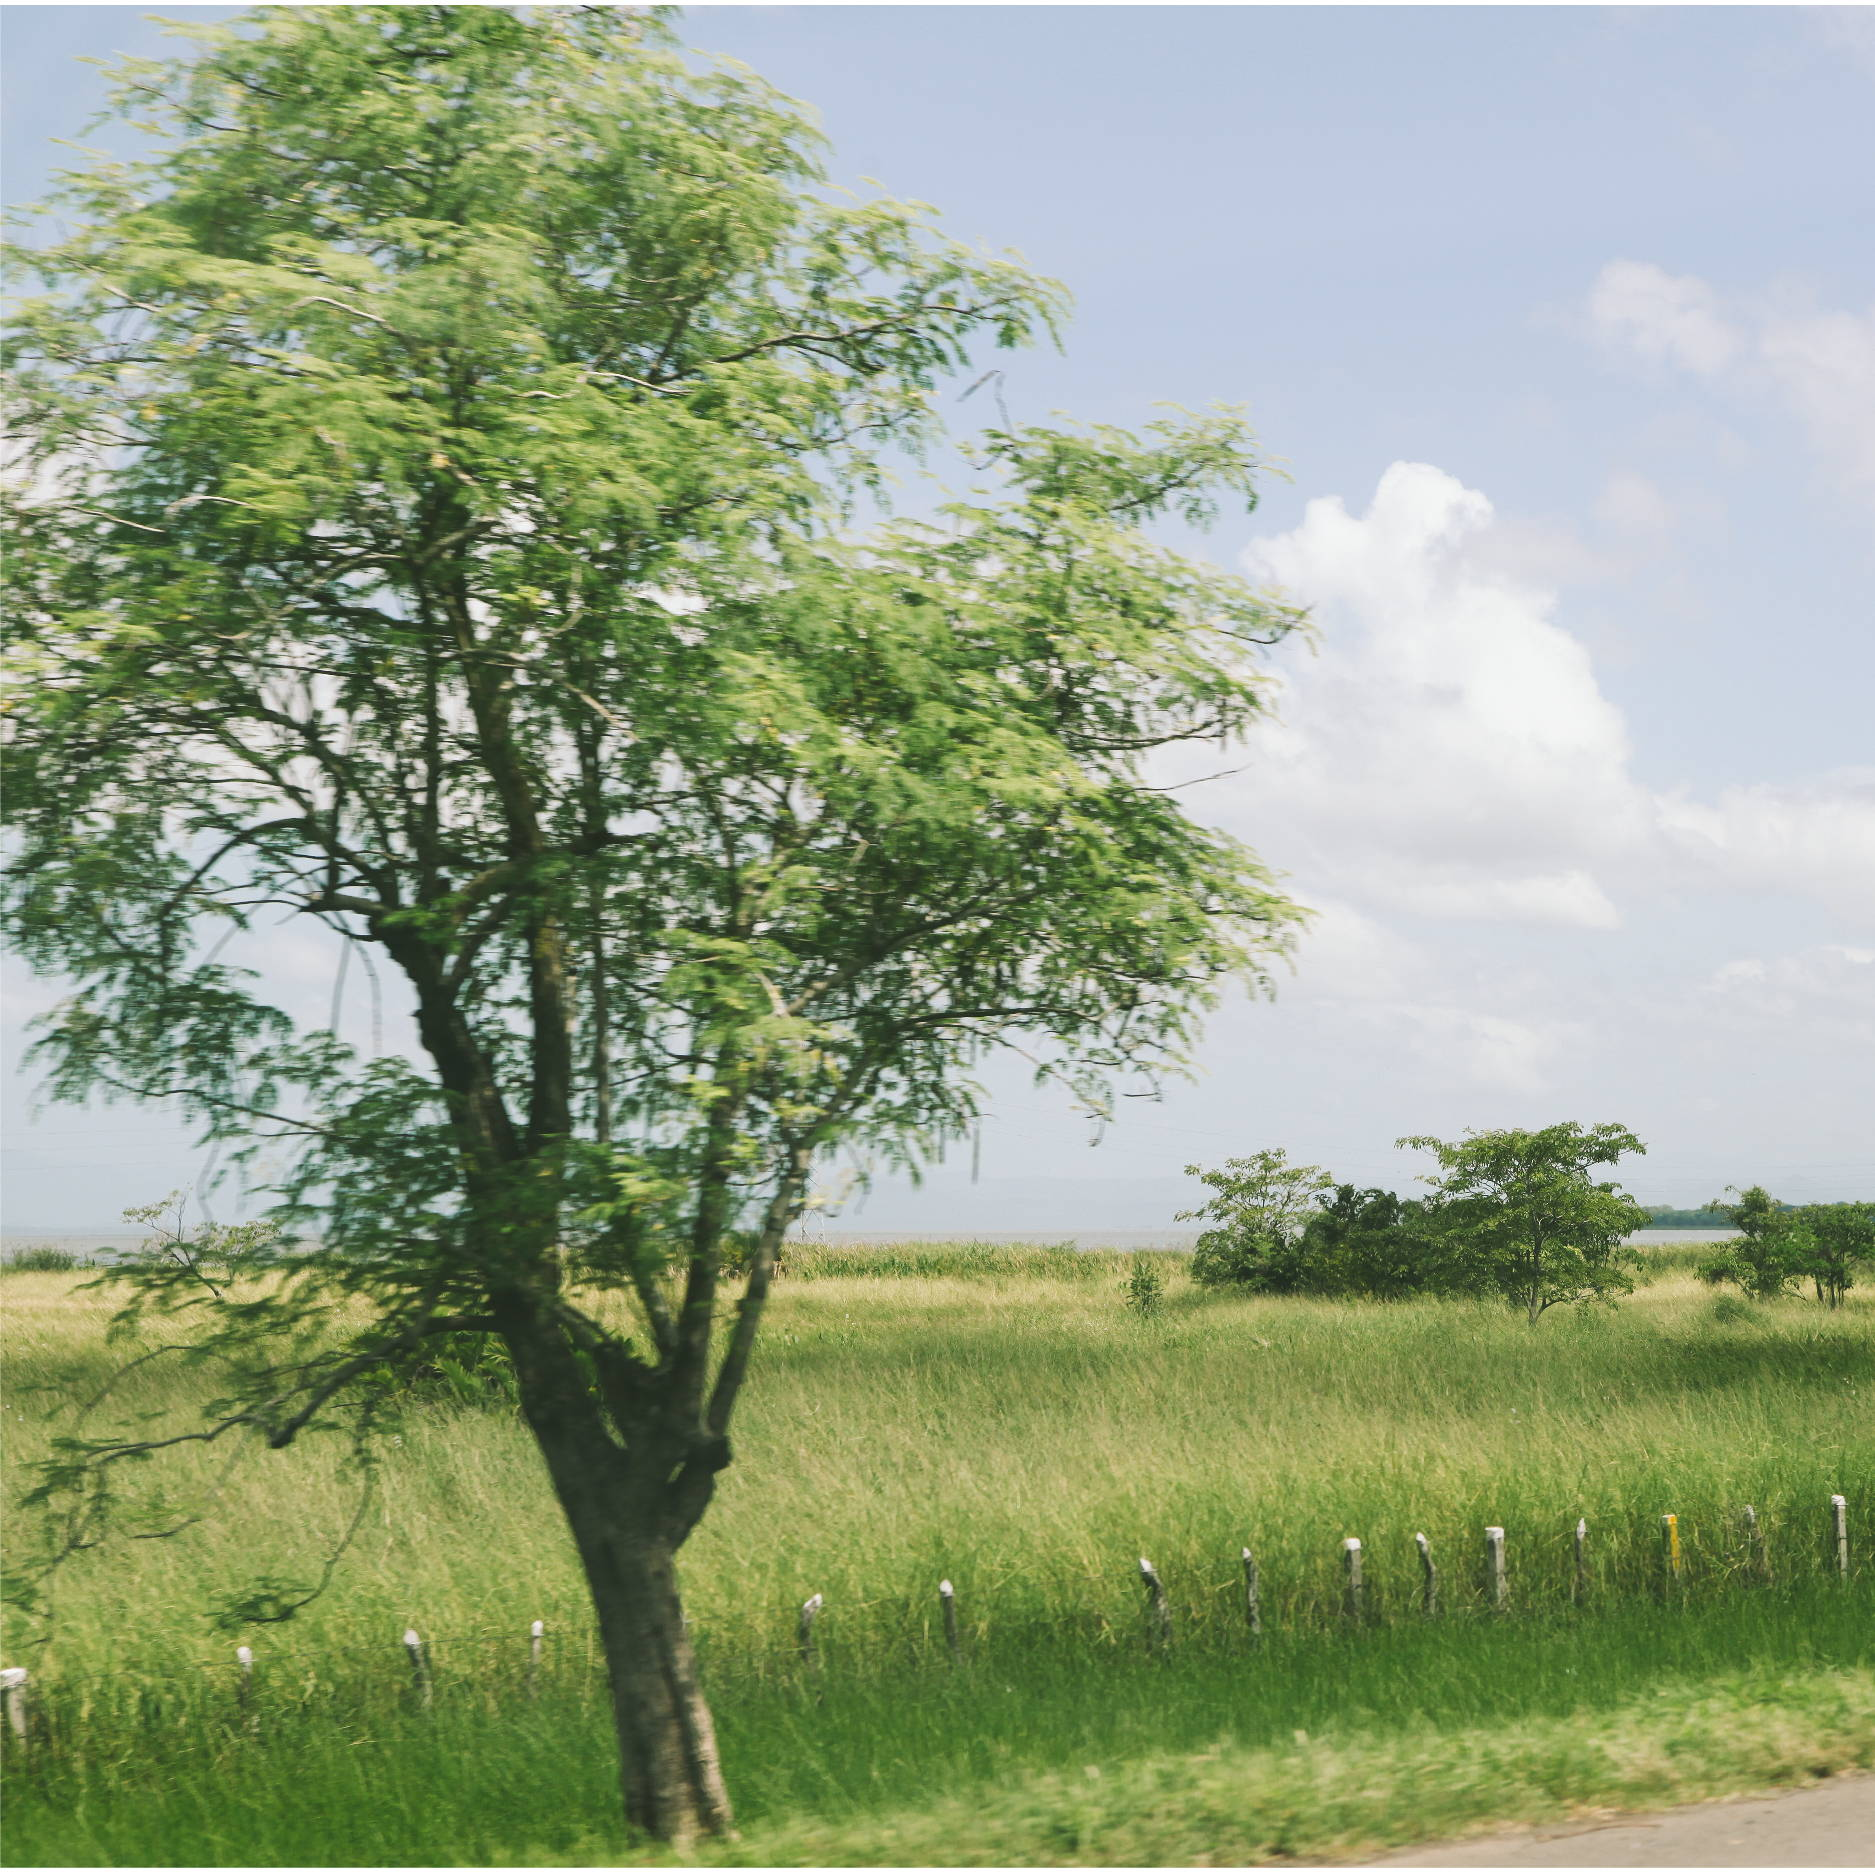 A large tree sits between a paved road and an overgrown rural nicaraguan field. I short barbed wired fence sits in the field